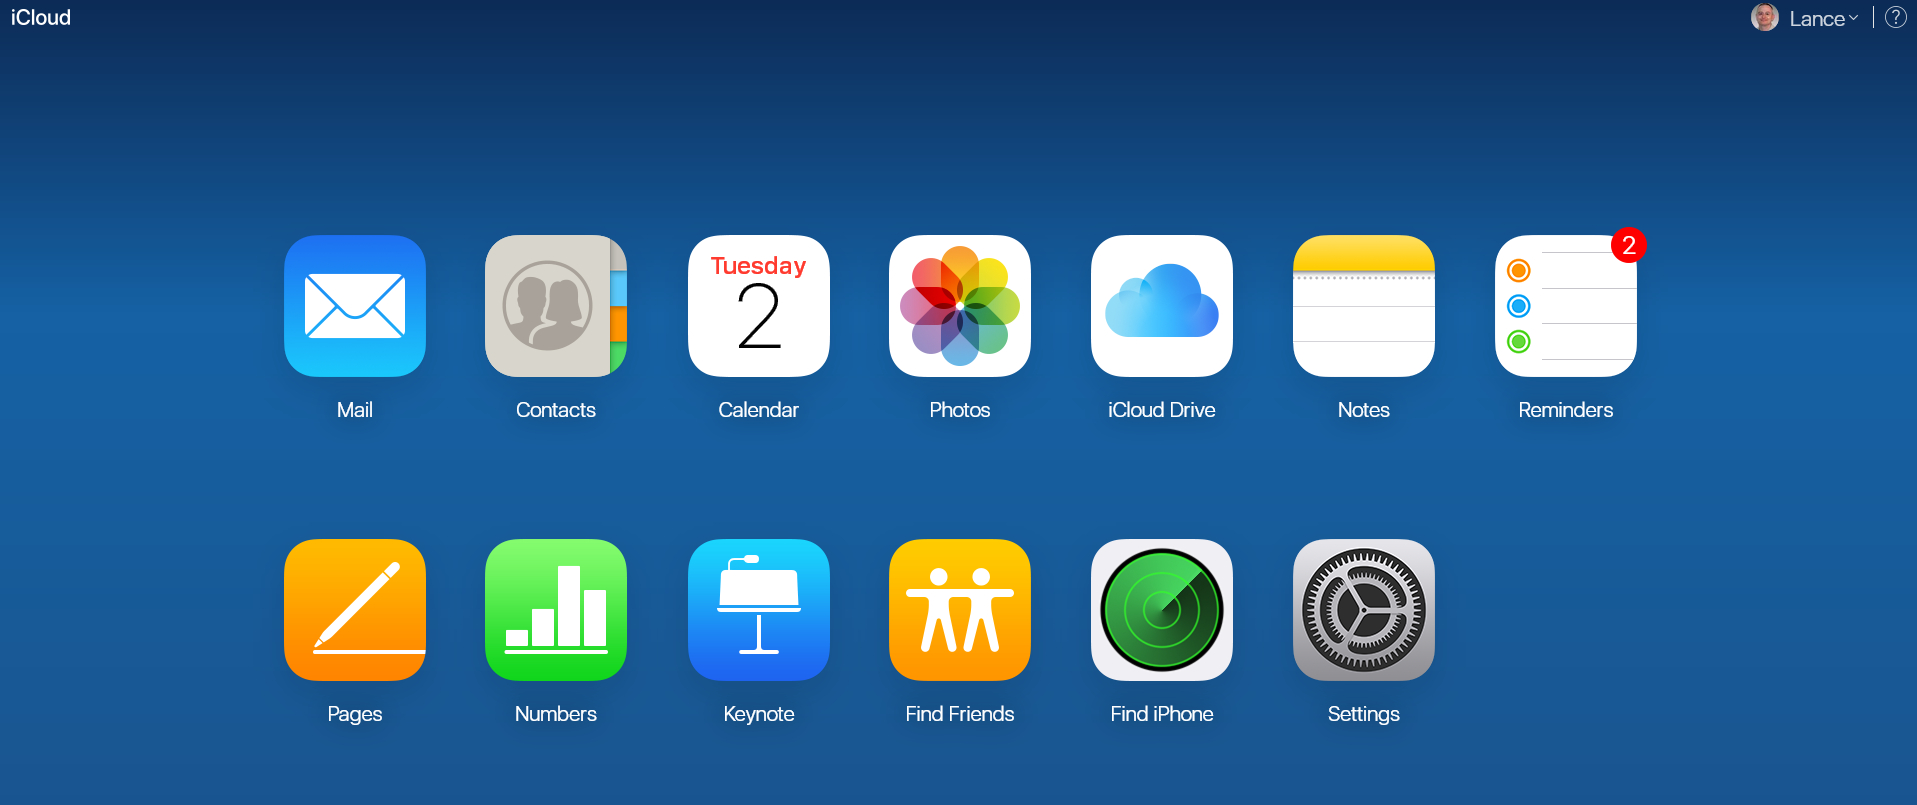 How To Use Icloud Online | Pcmag pertaining to Calendar Icon Missing On Iphone